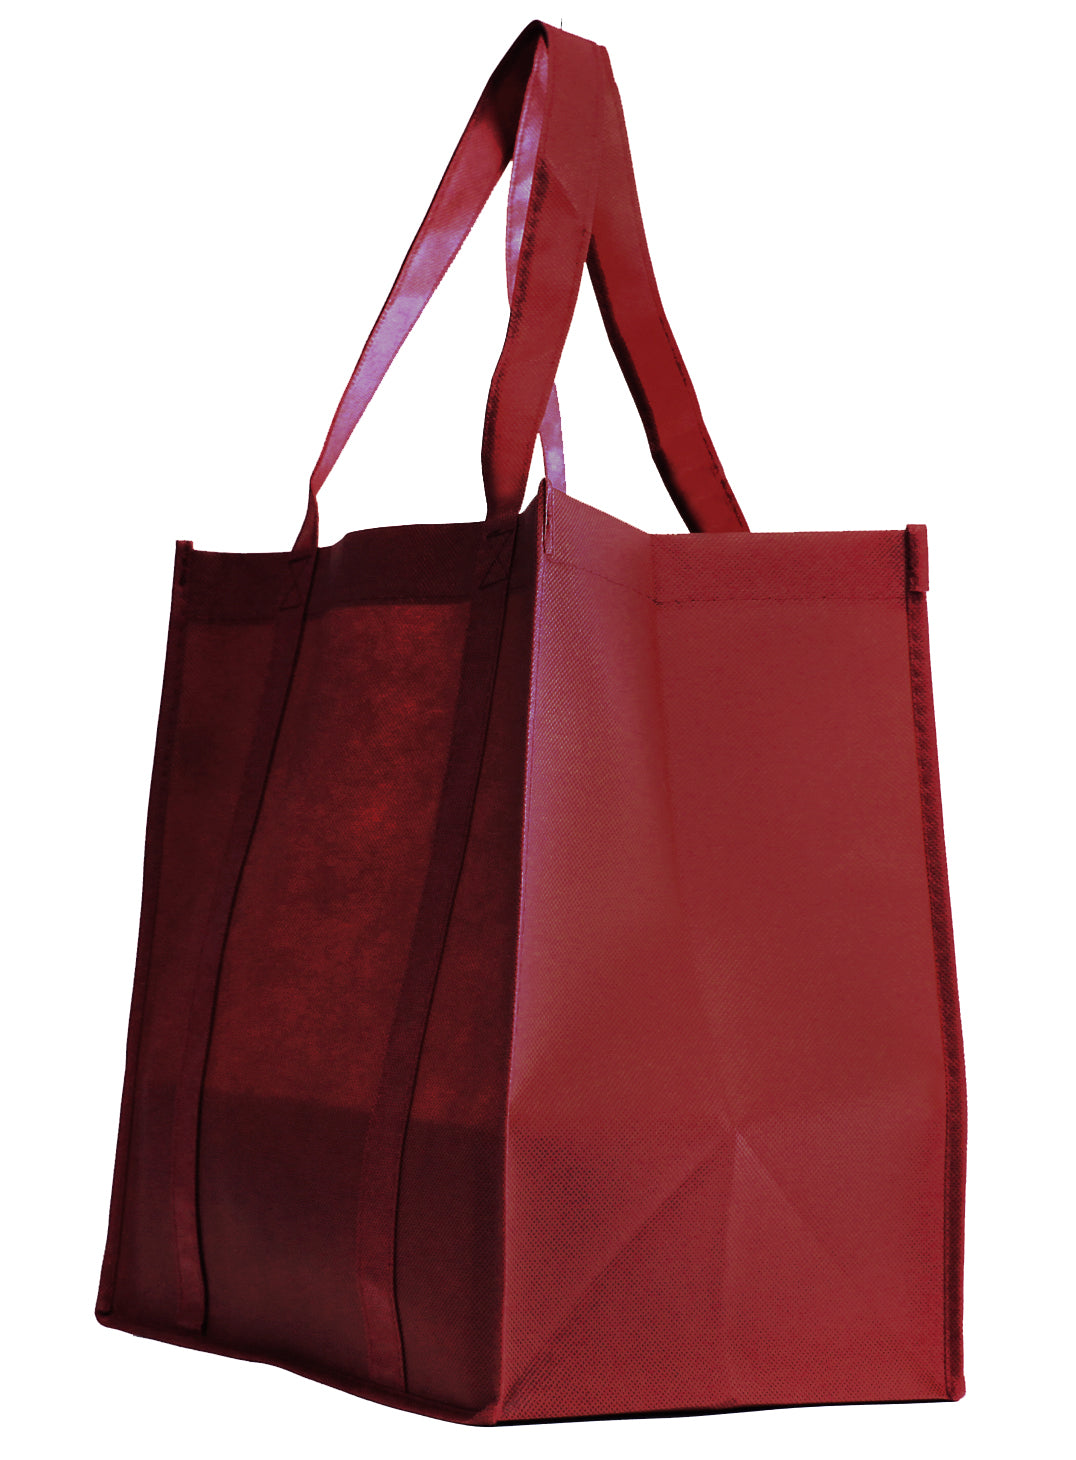 Non-Woven Bag, reusable grocery bag, fabric bags, reusable non-woven tote bags, burgundy grocery bags, school bags, lunch bags